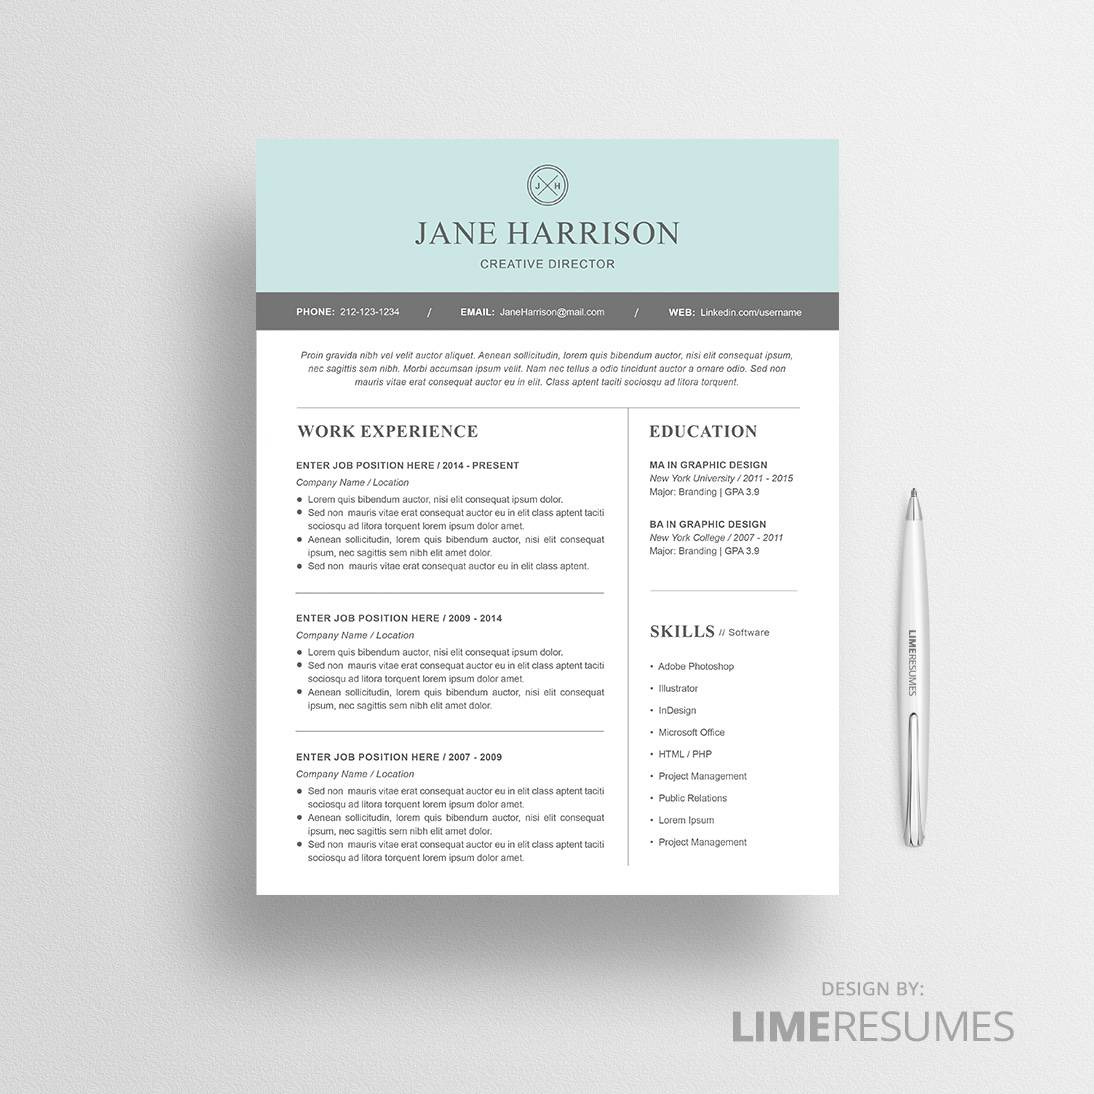 make my professional resume sample customer service resume make my professional resume professional resume and cover letter writers modern resume template for microsoft word